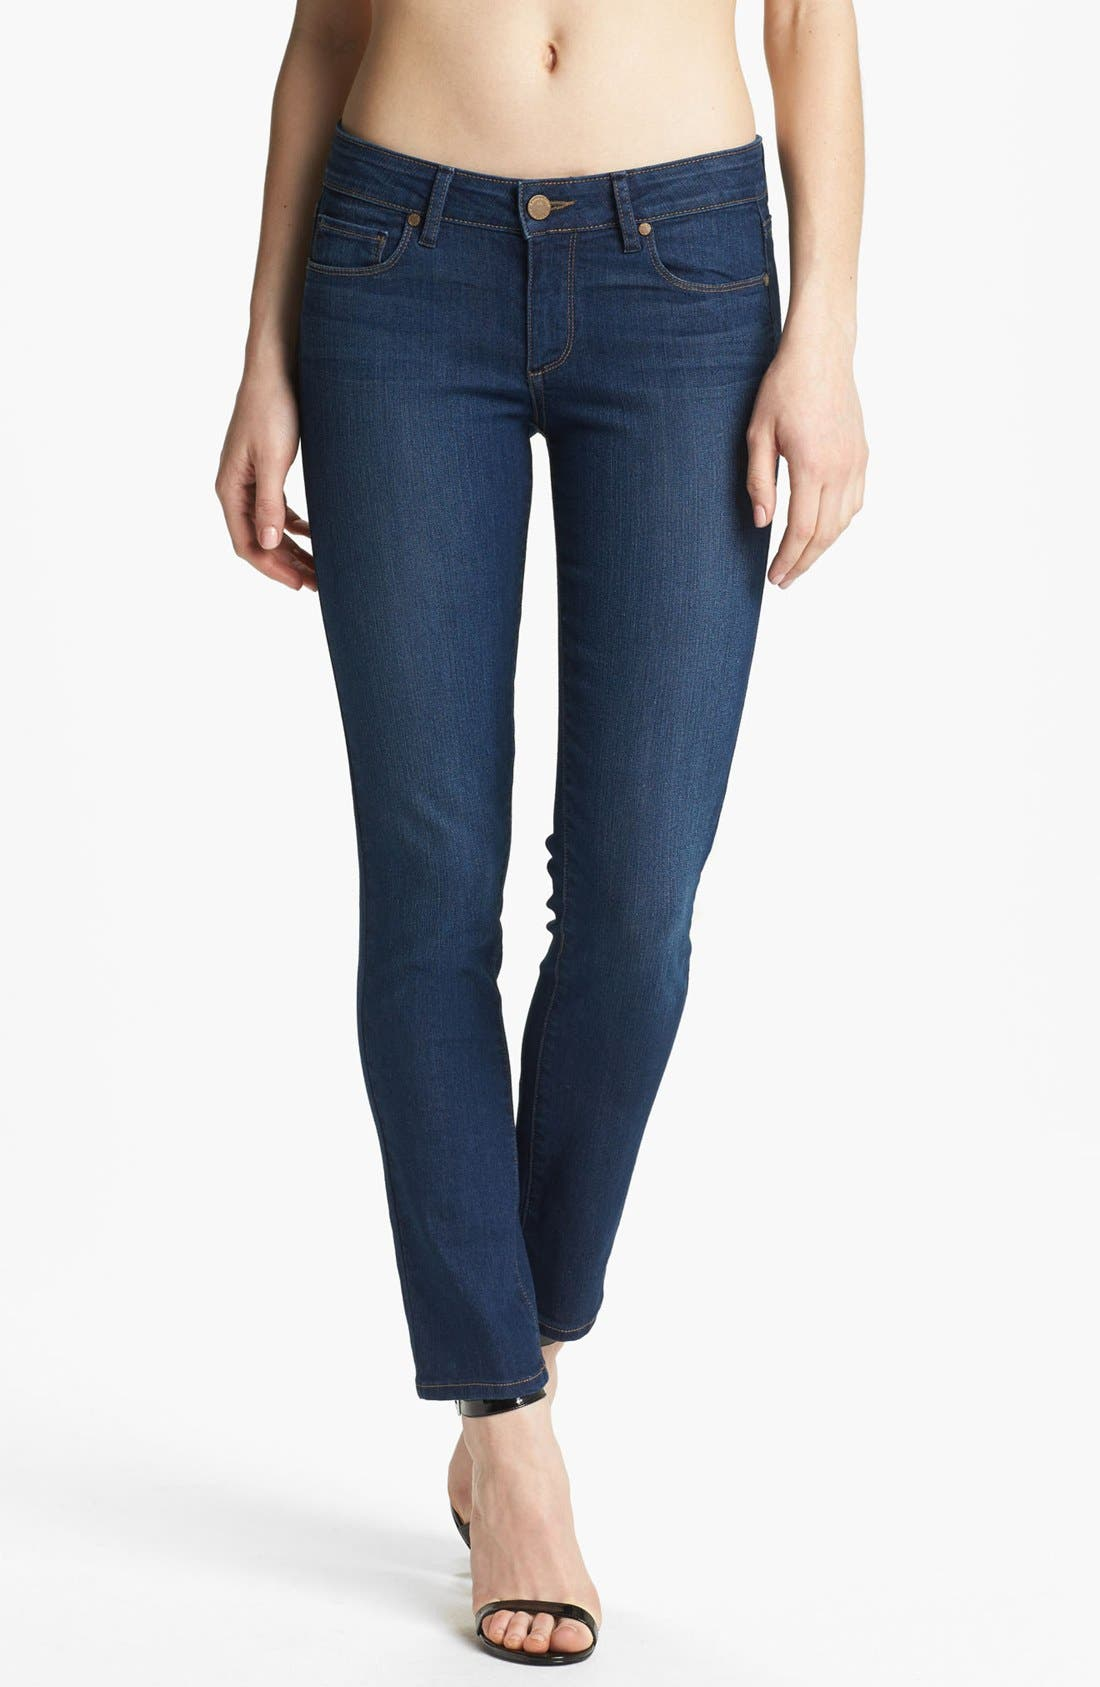 Main Image - Paige Denim 'Skyline' Ankle Jeans (Libby)